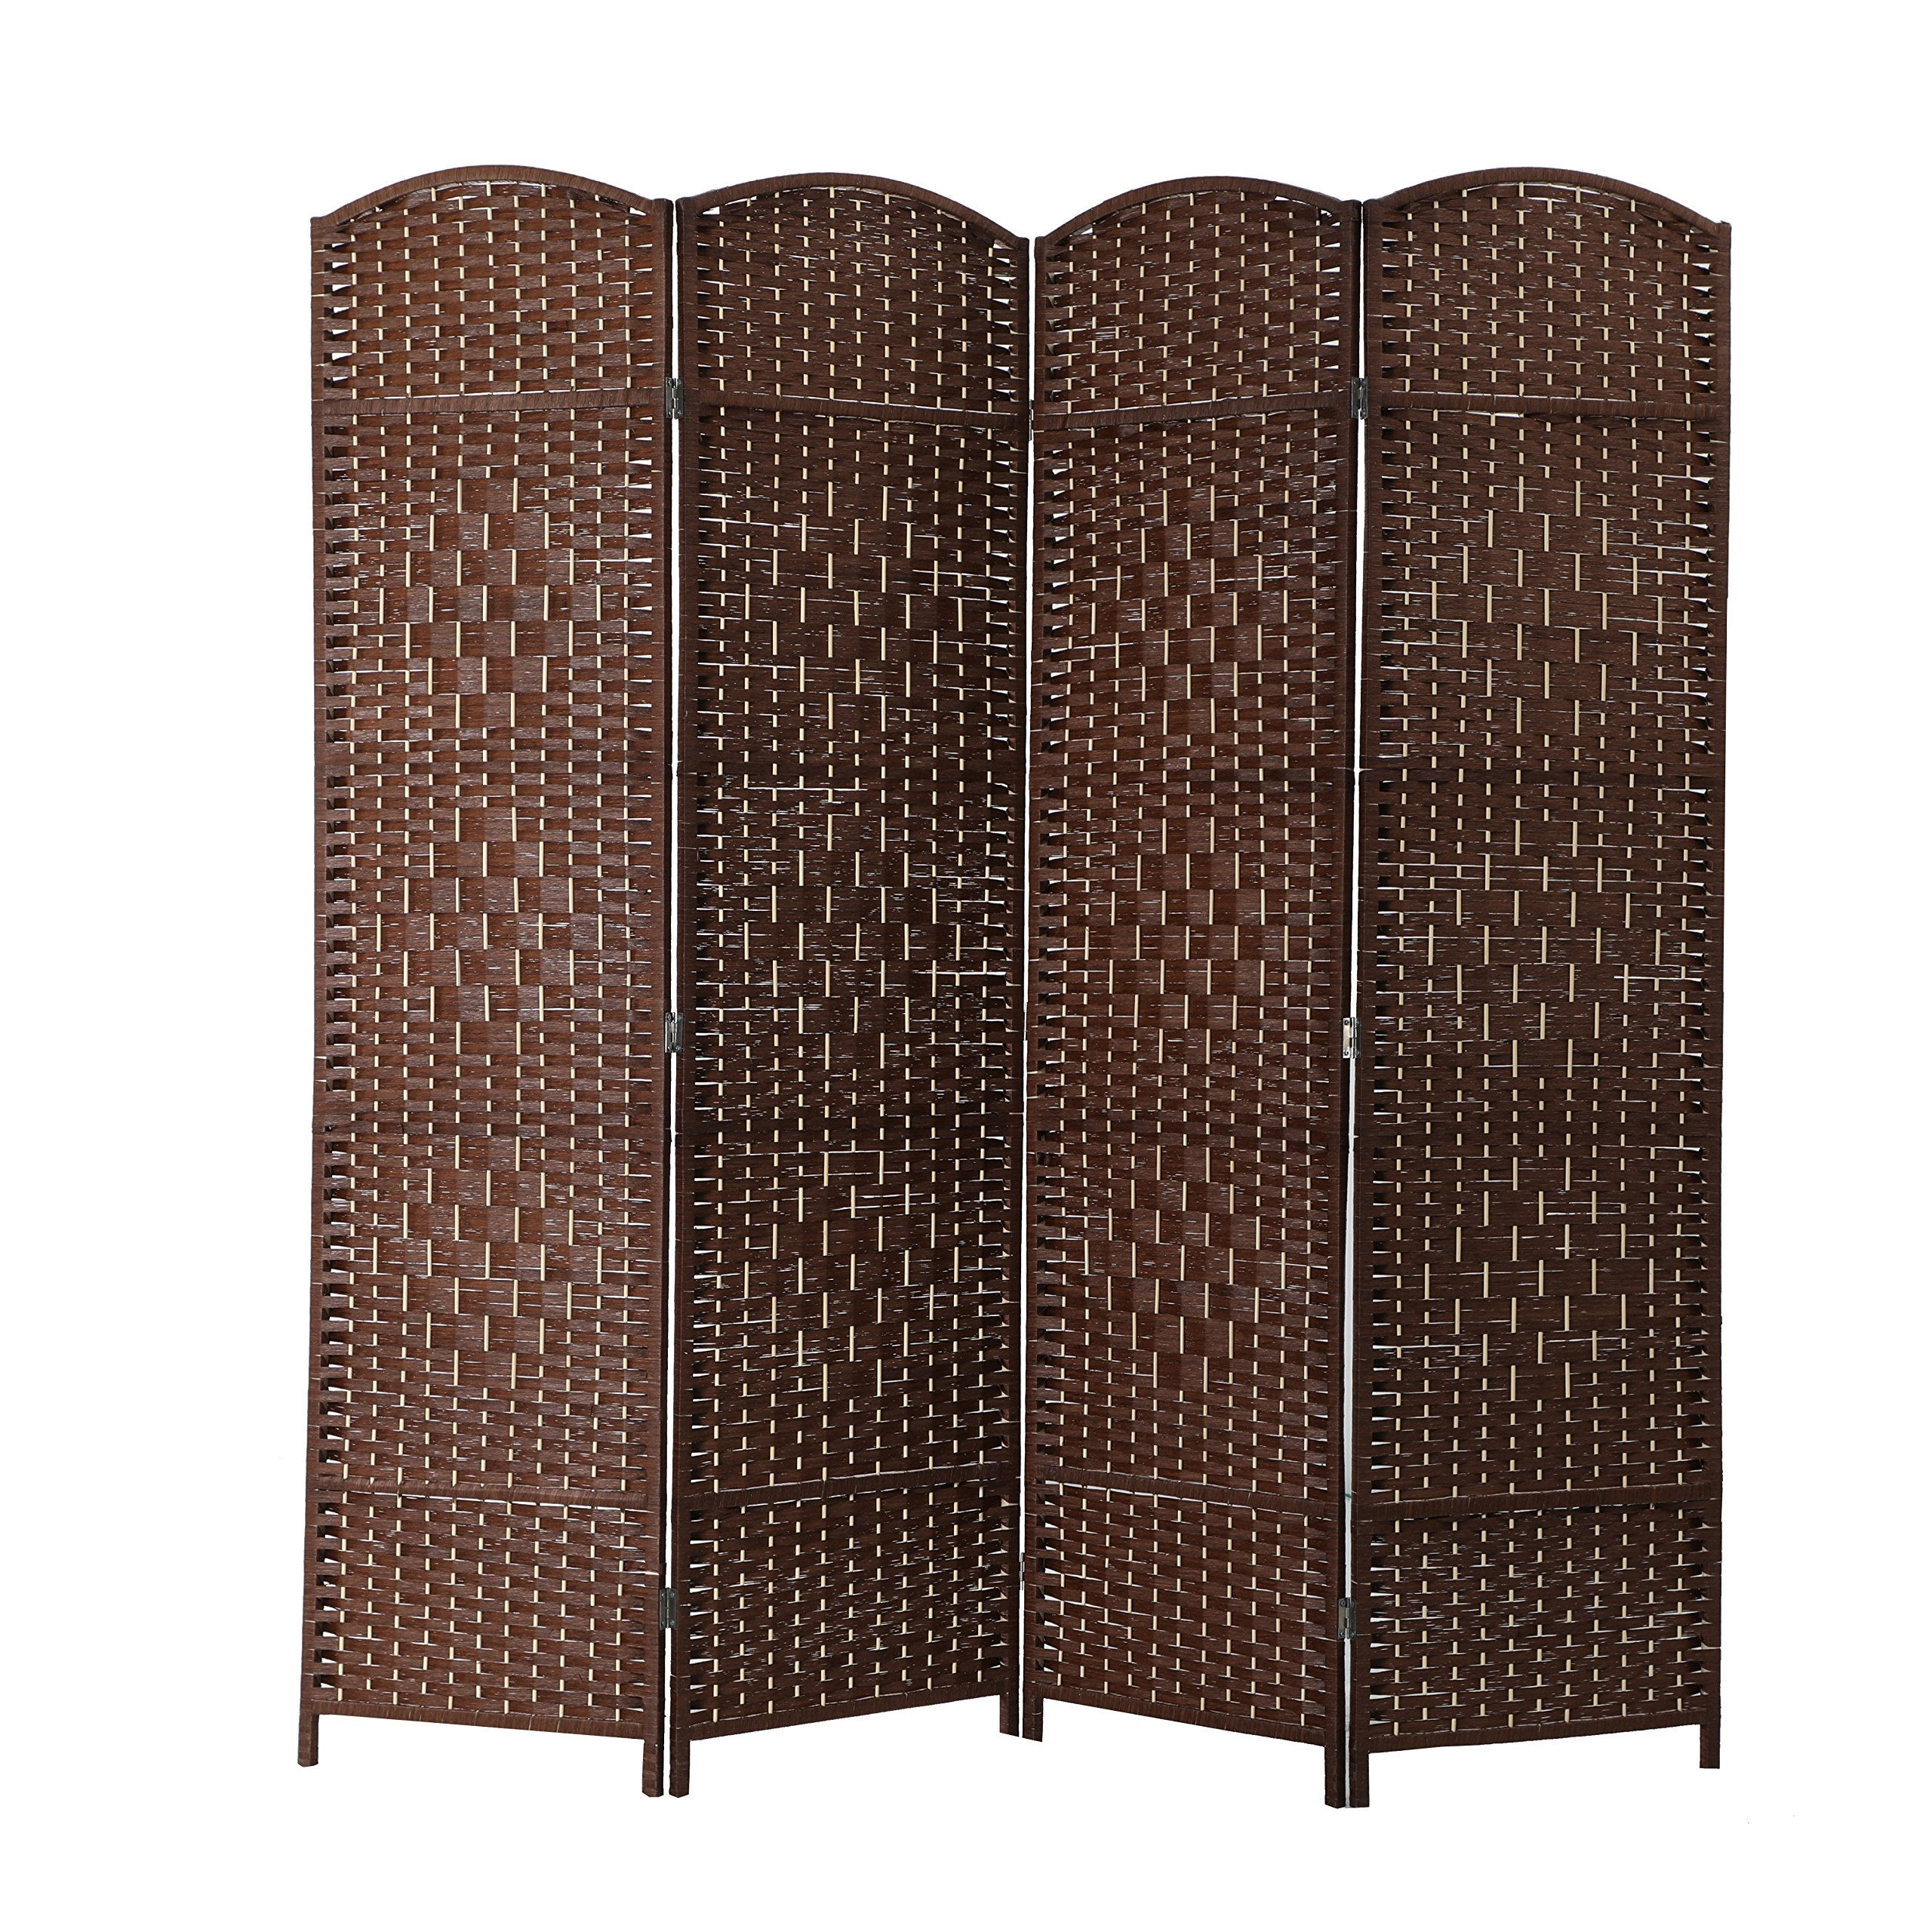 ALPHA HOME 4 Panel Room Divider - Handcrafted Wood Framed Folding Privacy Screen Diamond Pattern, Light Brown